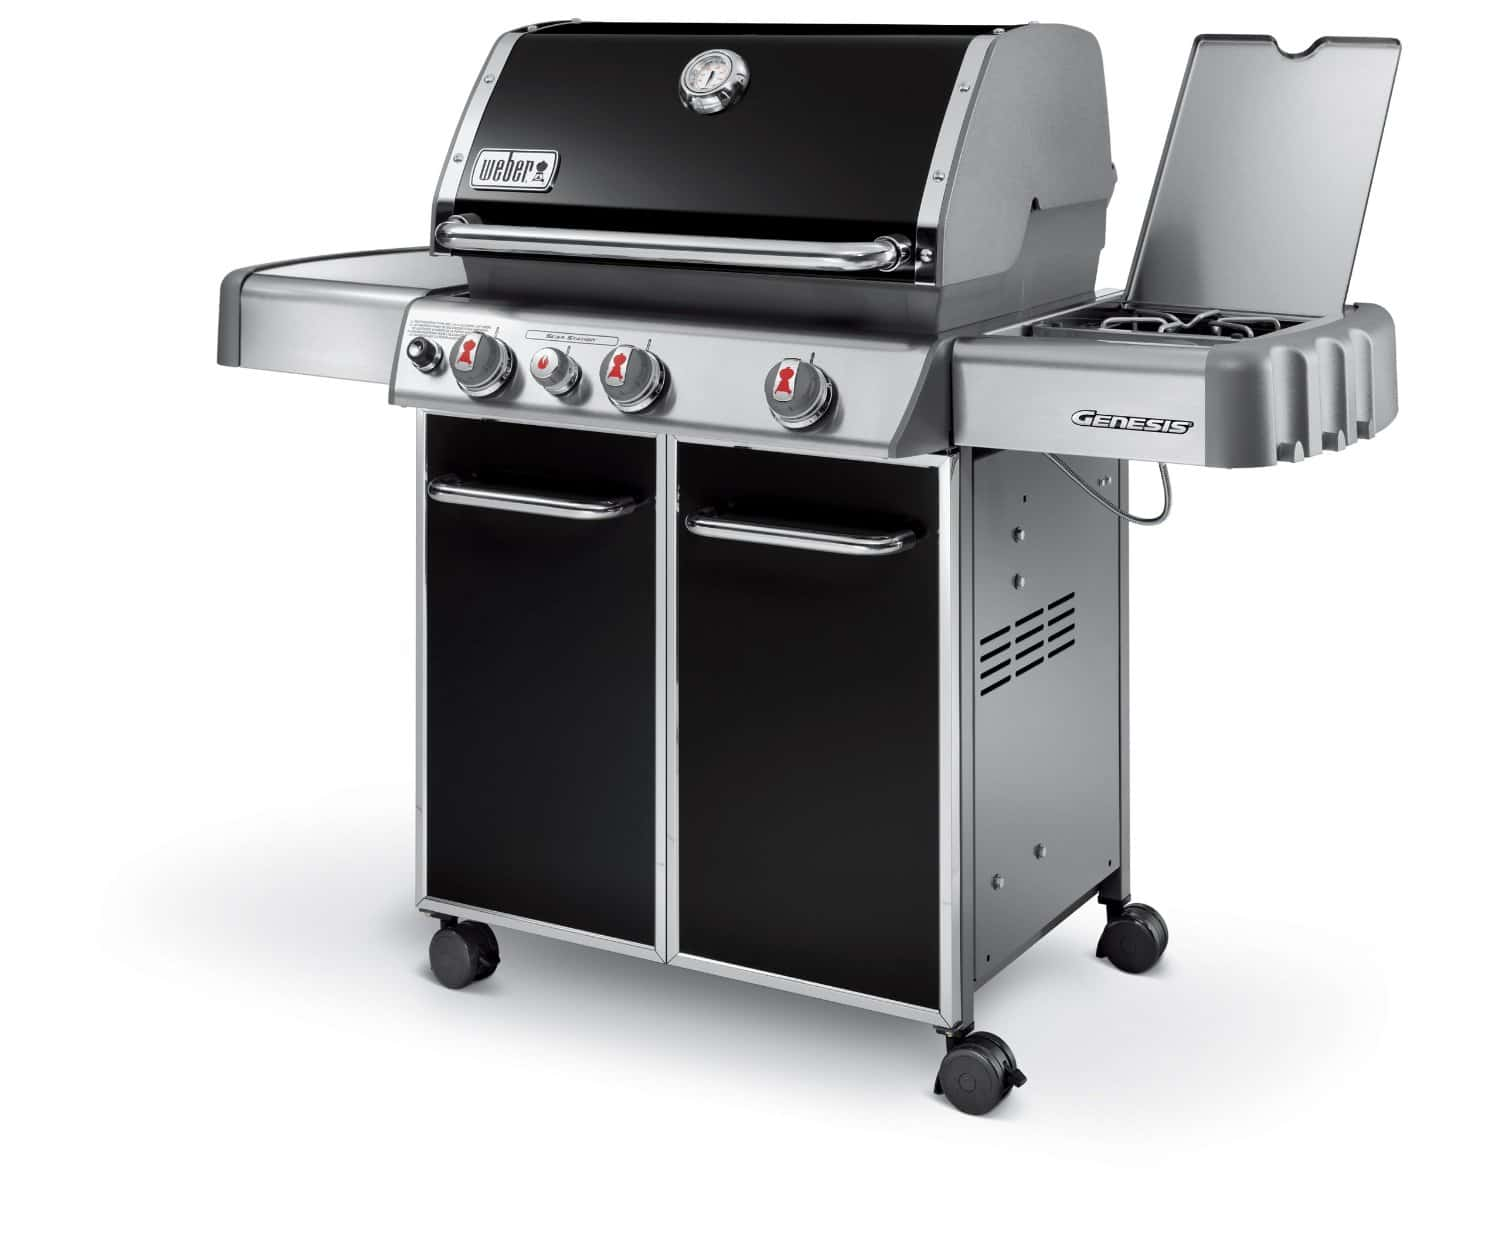 broil-mate gas grill